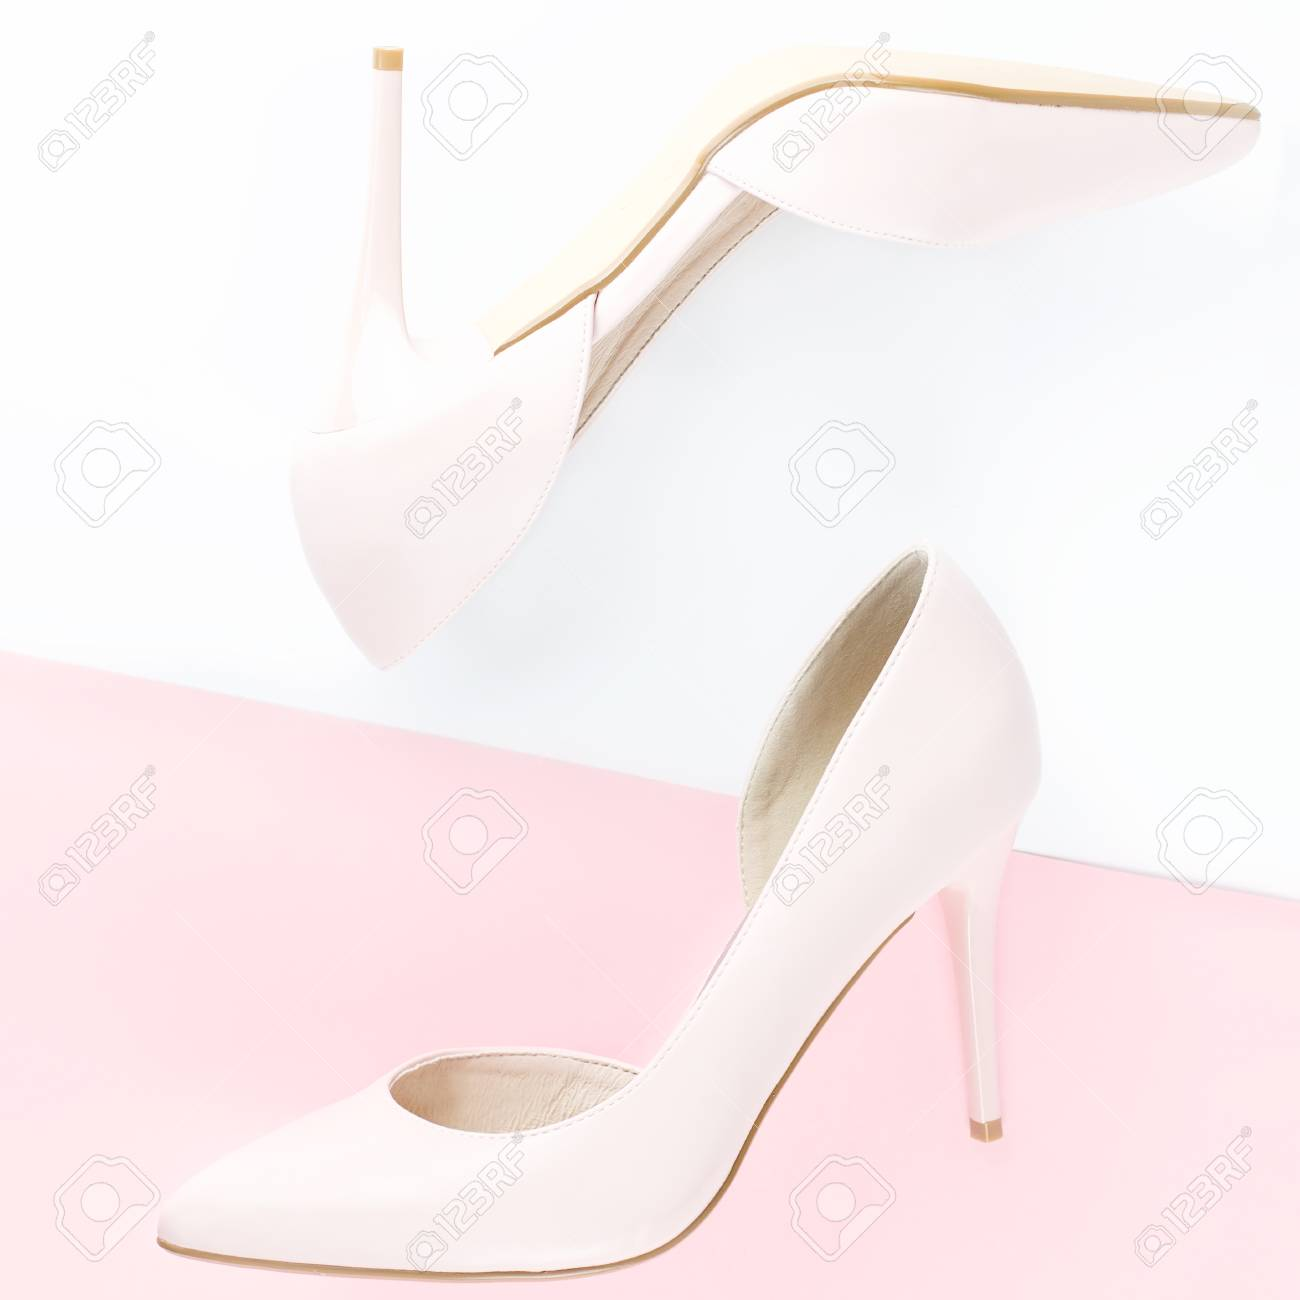 f3addf02ec8 Woman pale pink pumps on pink and white background. Top view,..